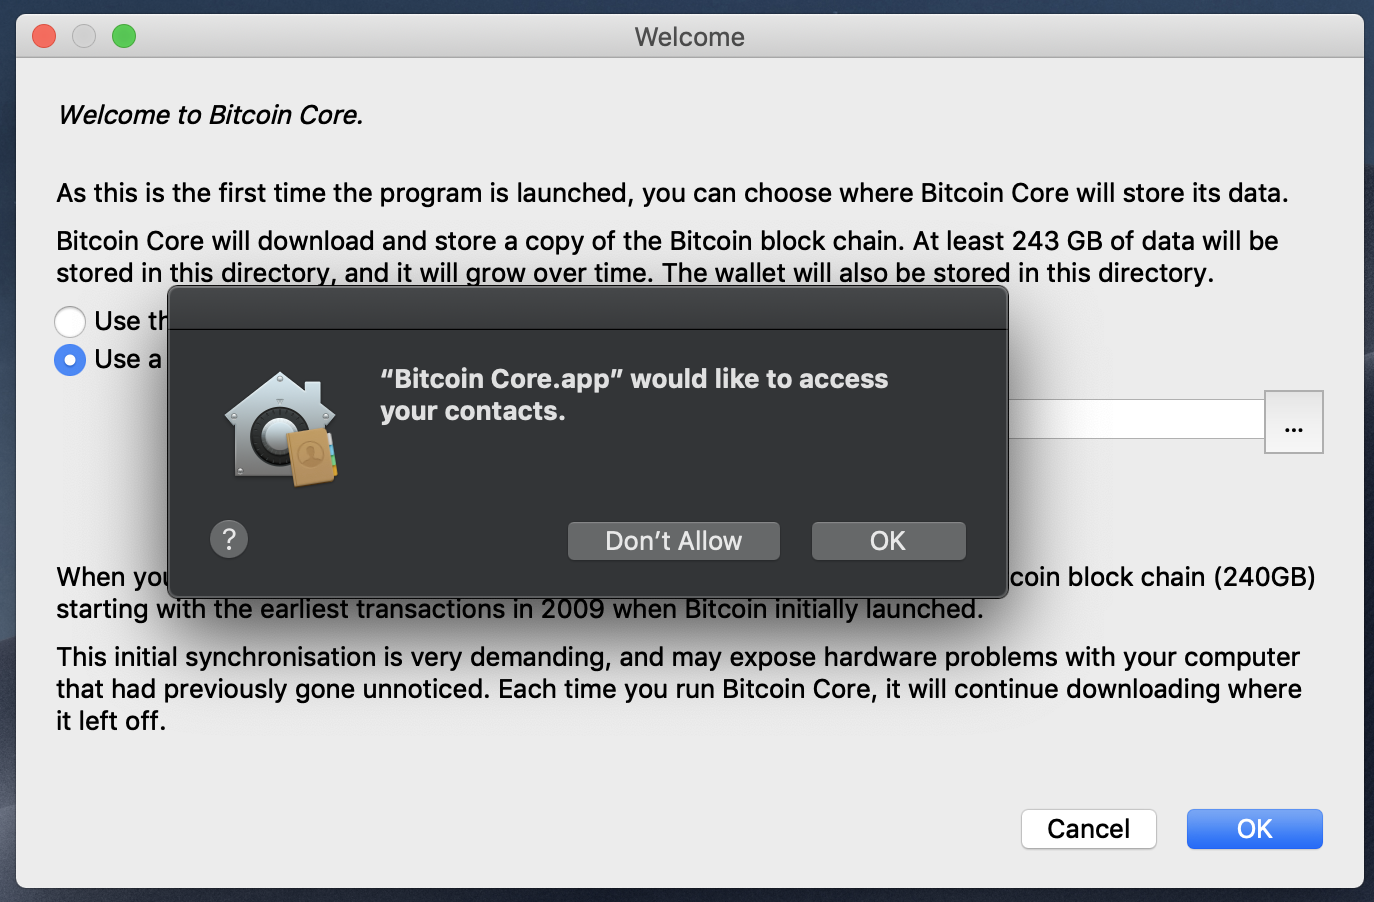 Bitcoin Core 0.18.0 requests access to Contacts.app and Calendar.app on macOS Mojave from a new installation on a formatted machine. · Issue #16403 · bitcoin/bitcoin · GitHub Bitcoin Core 0.18.0 requests access to Contacts.app and Calendar.app on macOS Mojave from a new installation on a formatted machine. · Issue #16403 · bitcoin/bitcoin - 웹